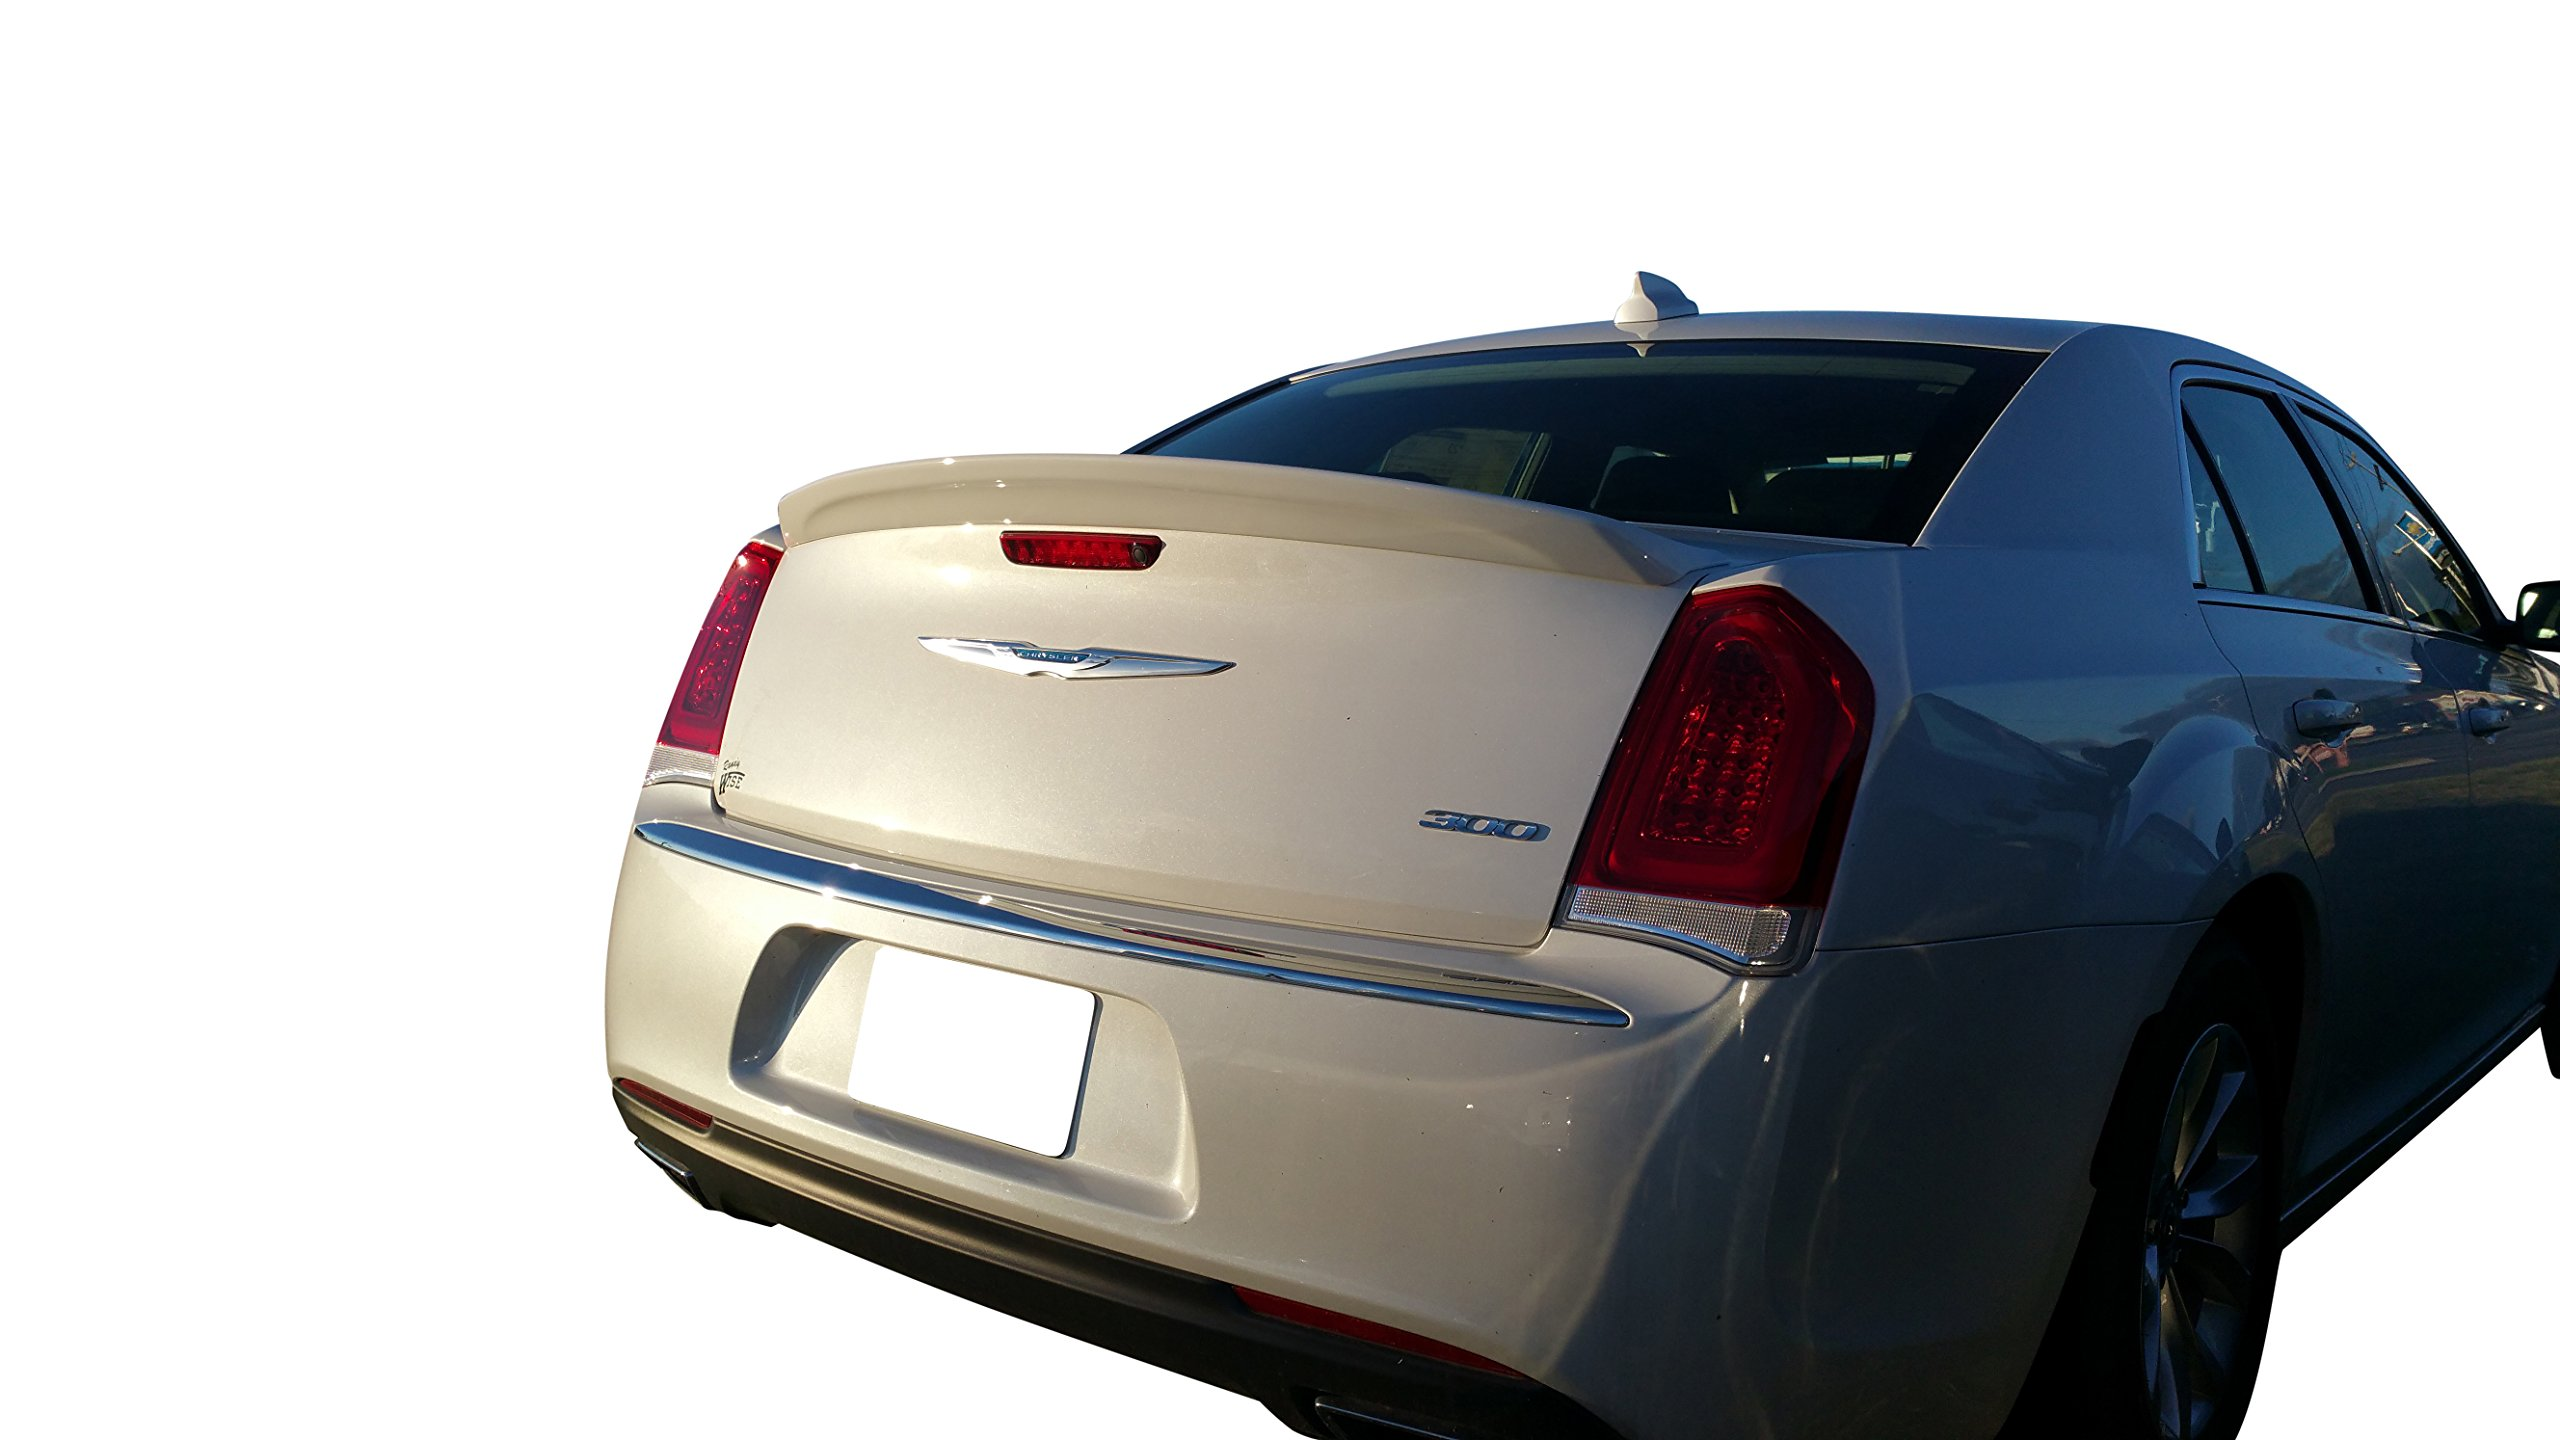 Facory Style SRT Spoiler for the Chrysler 300 2012-2018 Painted in the Factory Paint Code of Your Choice 563 Tungsten PDM